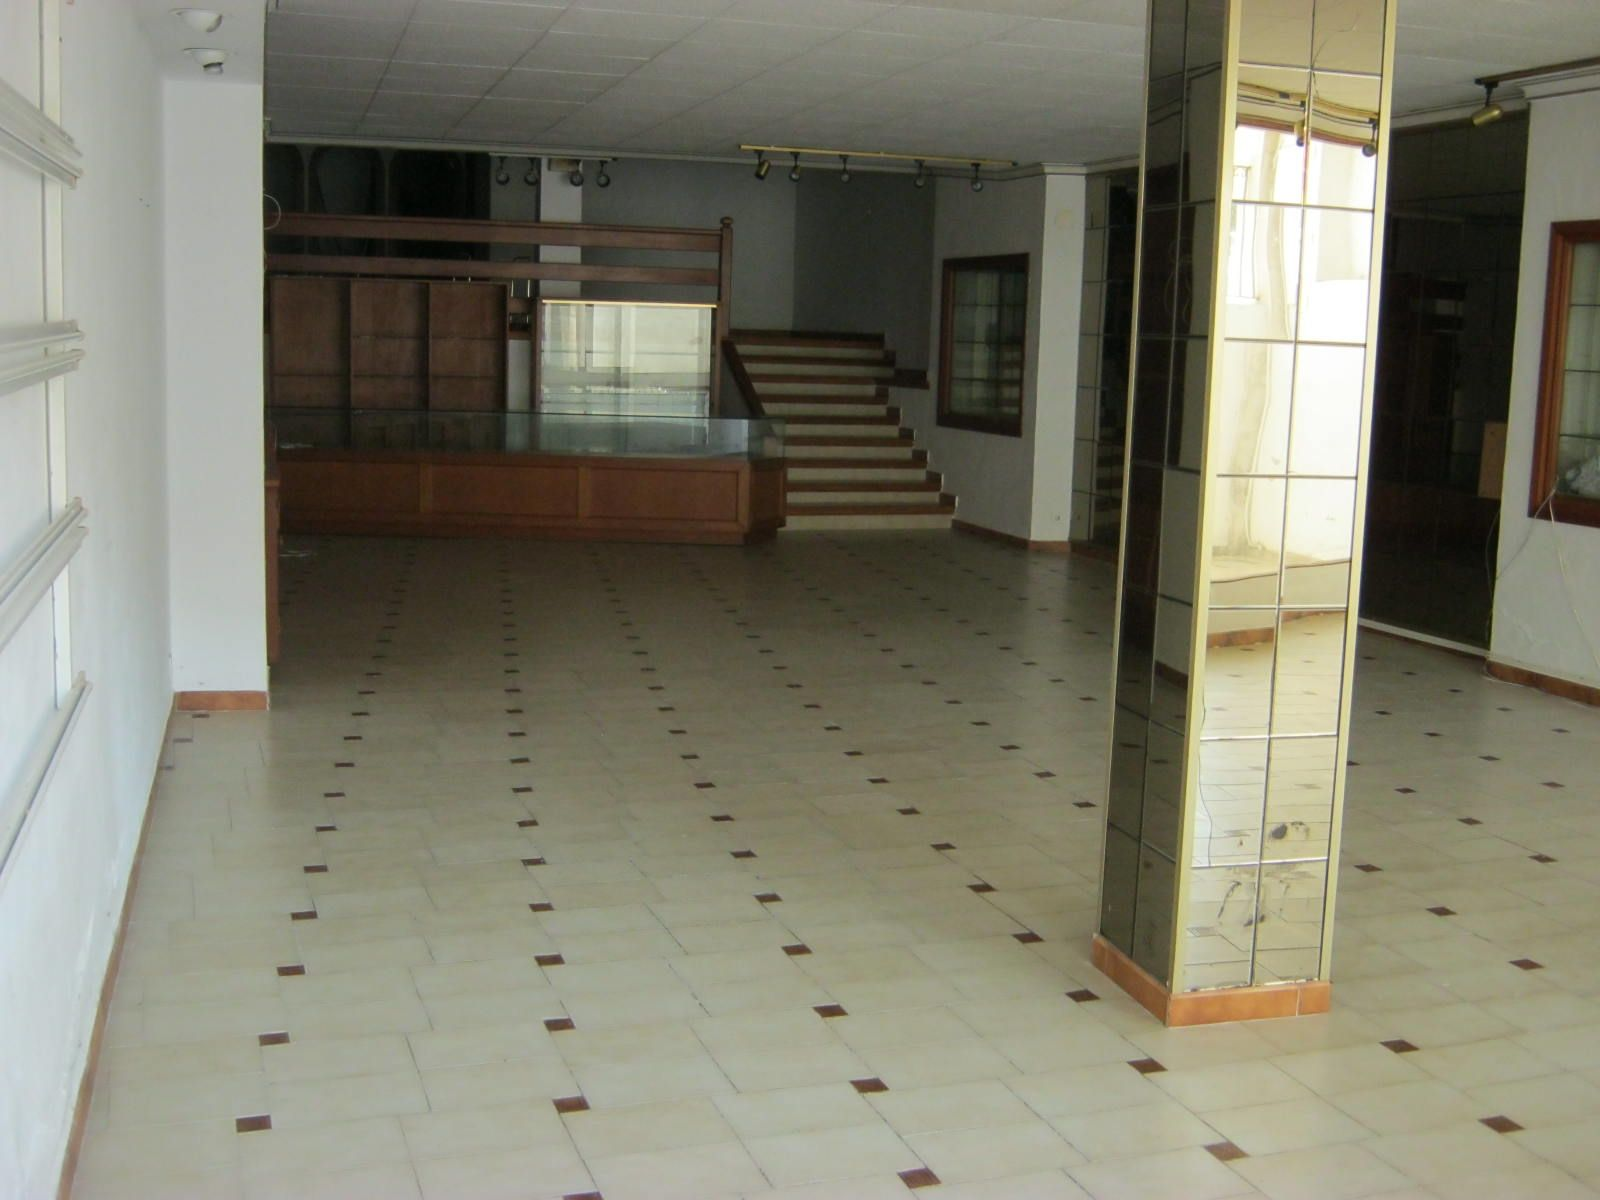 Local commercial benissa vente ou location 220 m for Vente ou location